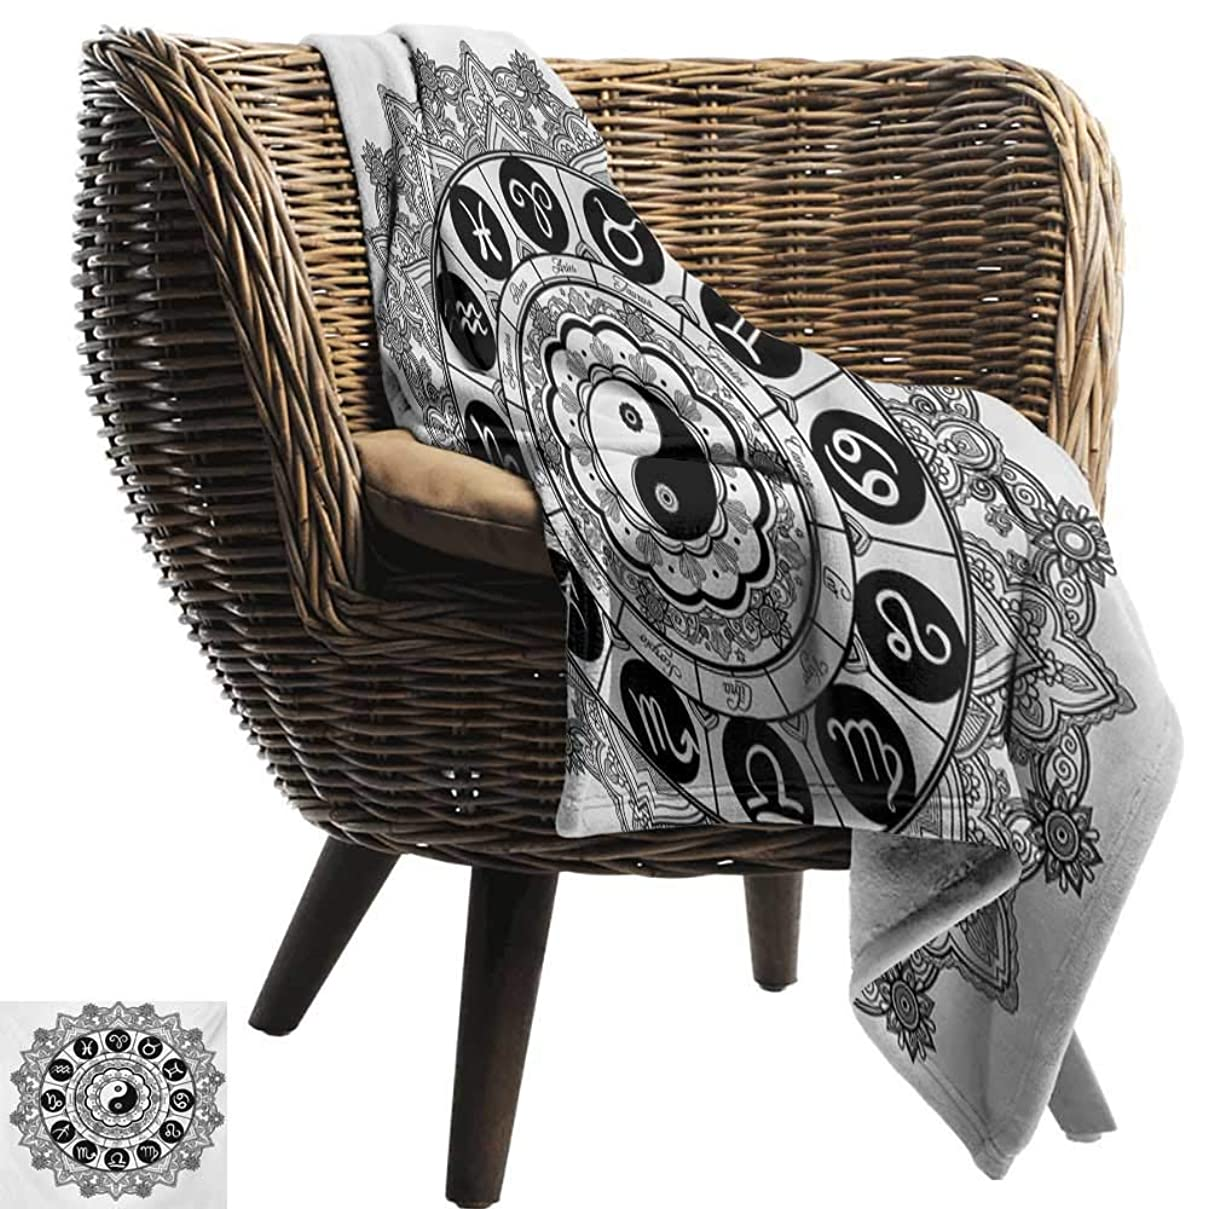 BelleAckerman Flannel Throw Blanket,Ying Yang,Round Zodiac Theme Design with Yin Yang Symbol in Centre Astrology Signs Print,Black White,Winter Luxury Plush Microfiber Fabric 50